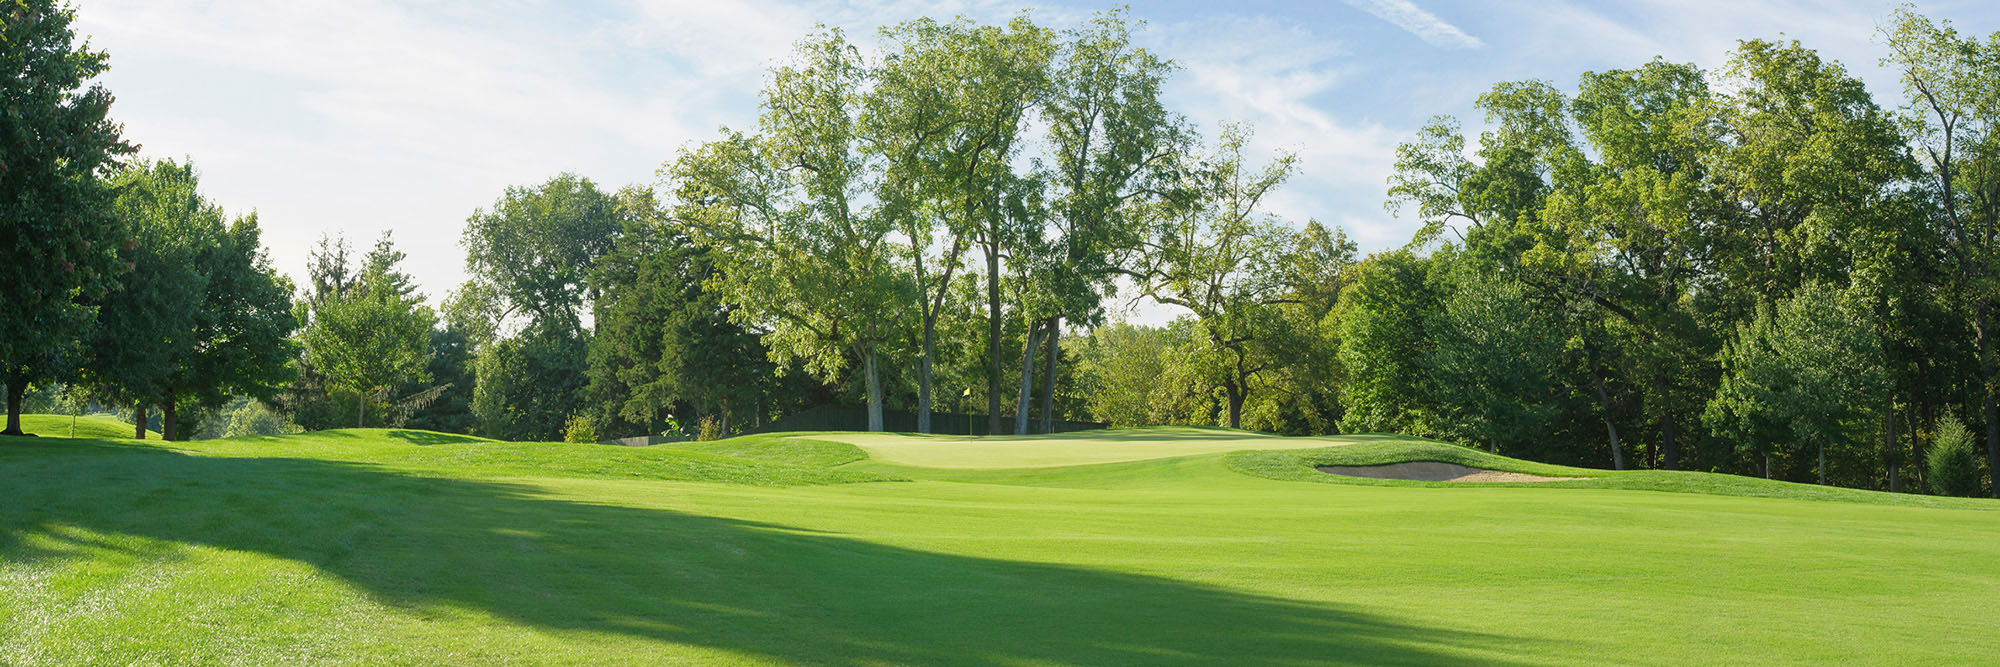 Golf Course Image - Hickory Hills No. 9